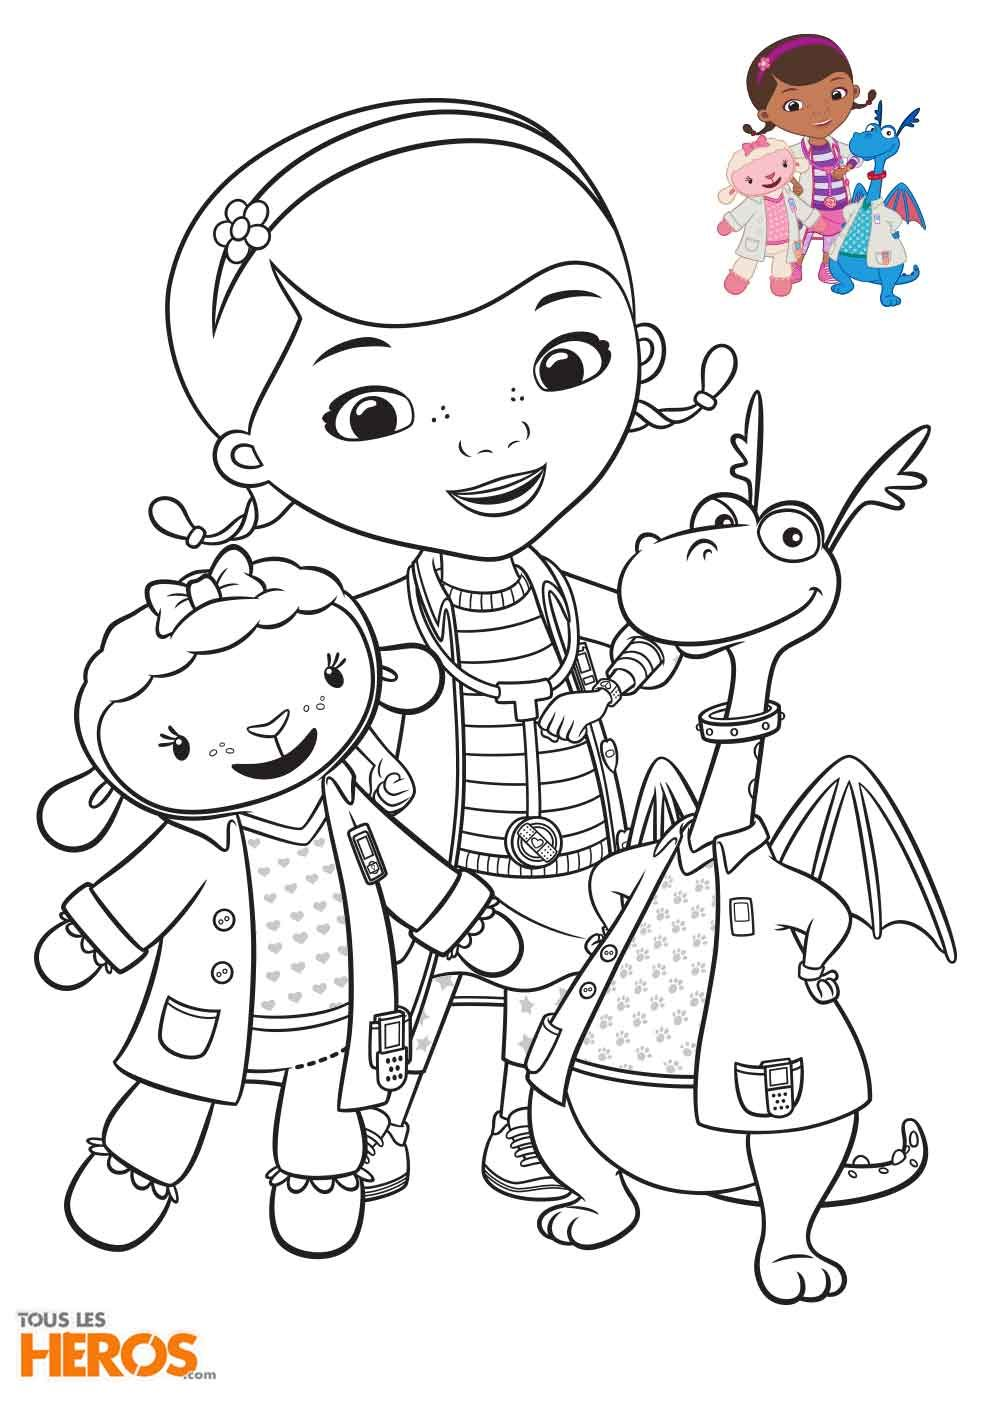 【Plus que 50】 Coloriage Doc La Peluche